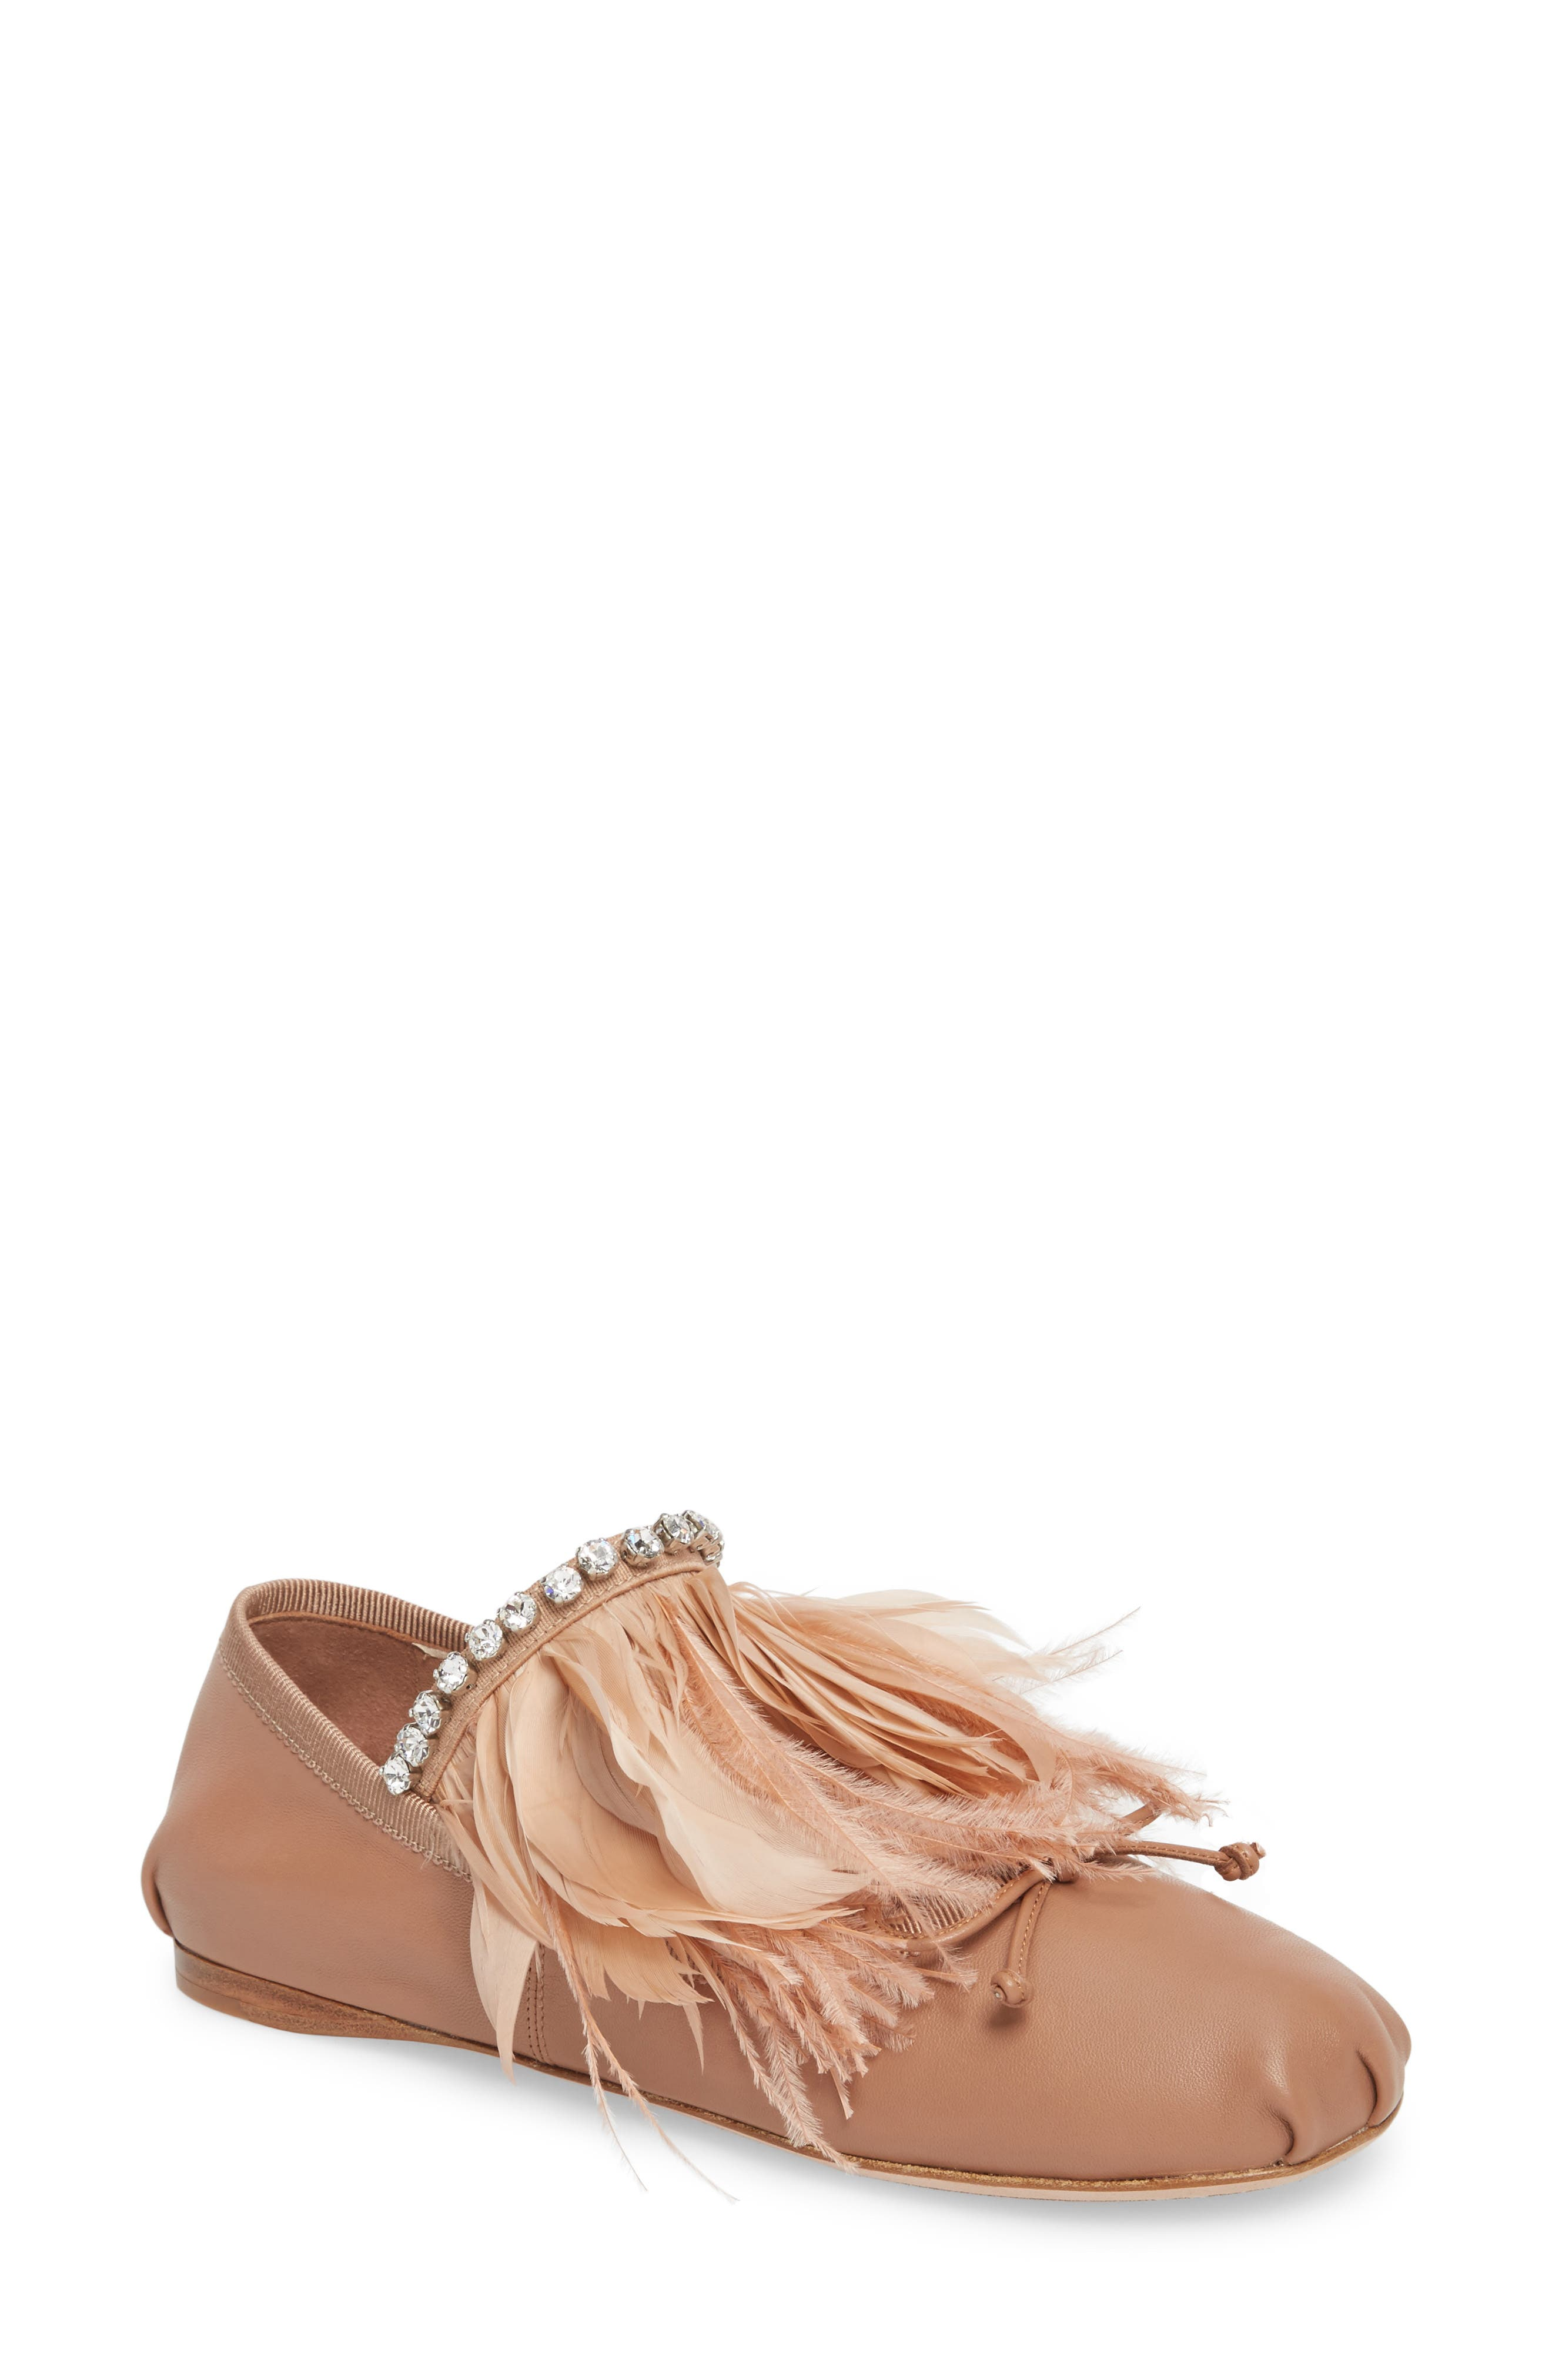 Miu Miu Feather Embellished Ballet Flat (Women)